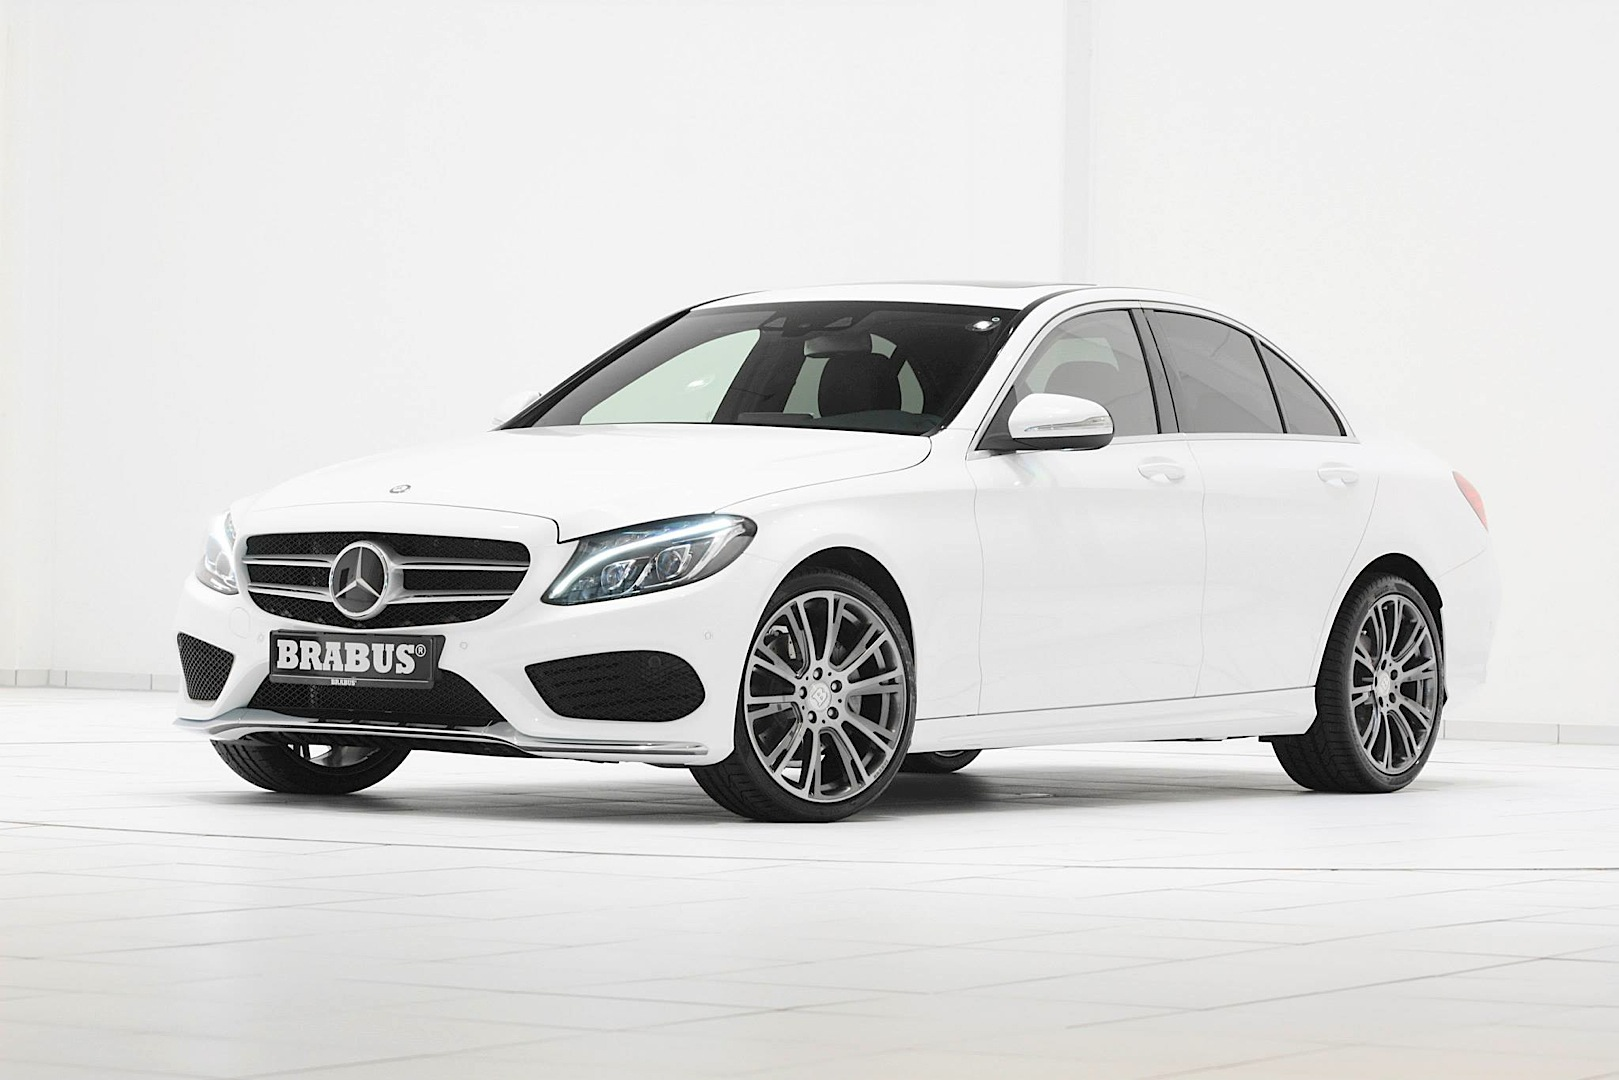 Brabus launches wheels for the new c class w205 for New white mercedes benz